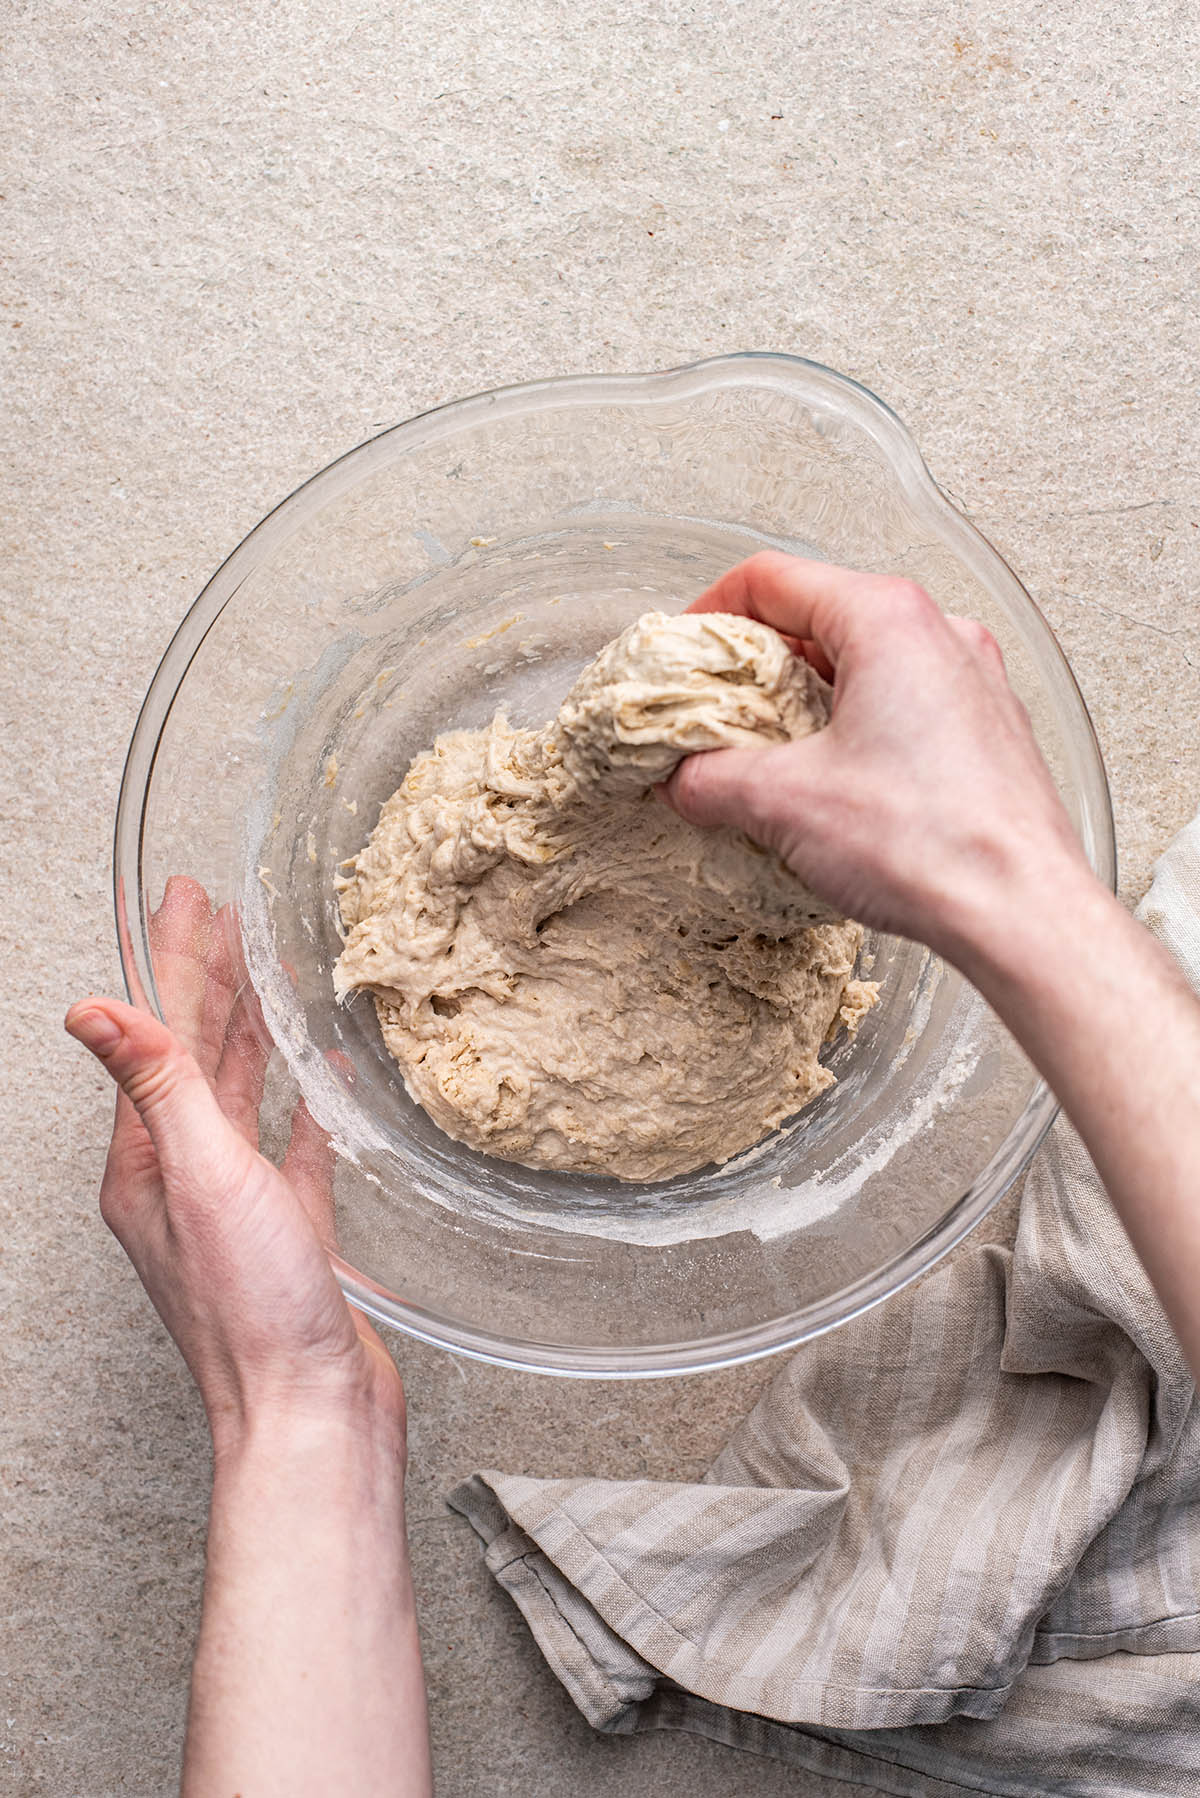 Stretching the dough.